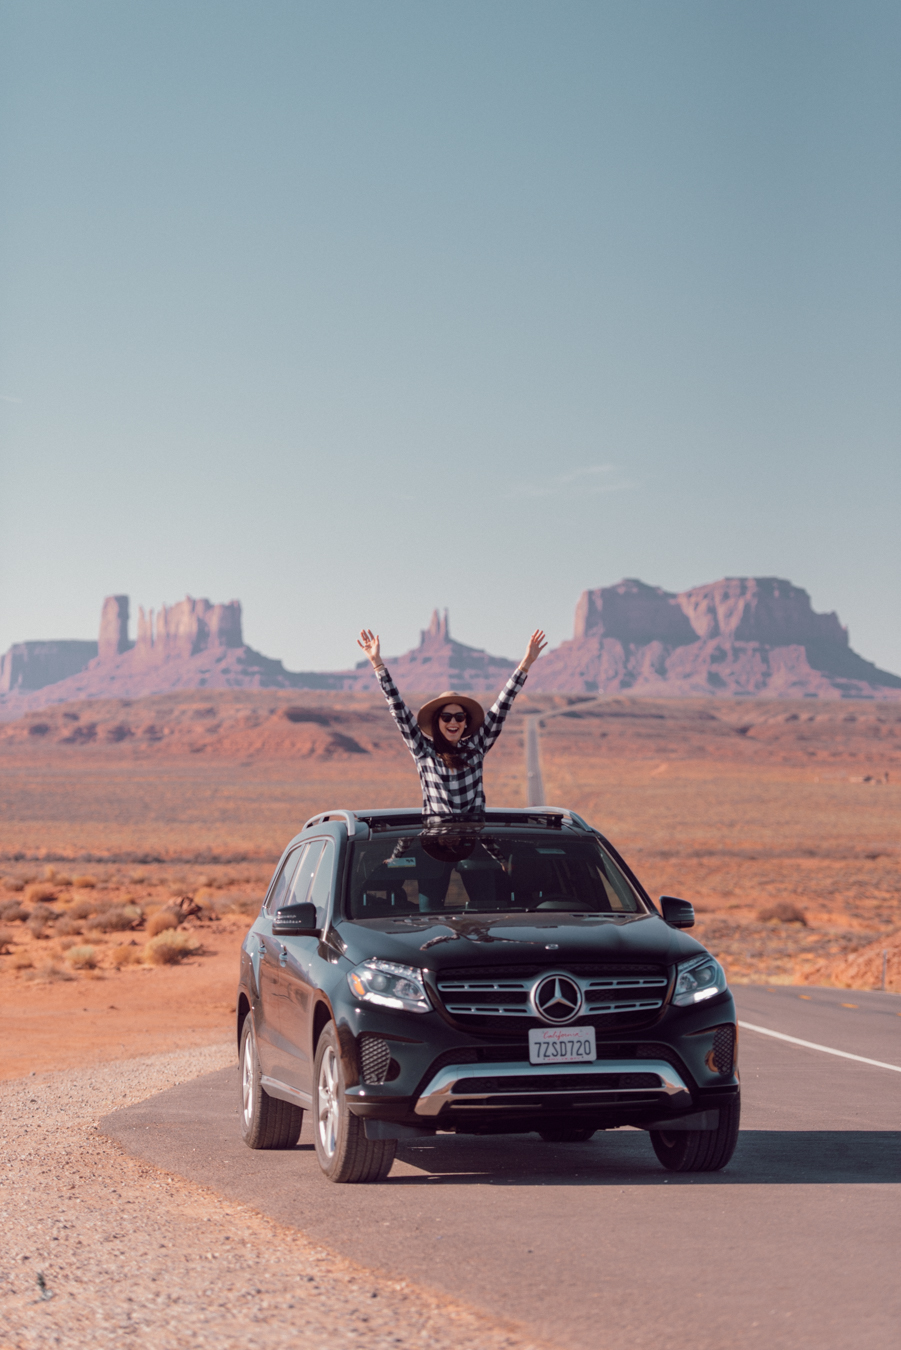 Blog-Mode-And-the-City-Lifestyle-voyage-roadtrip-USA-cote-ouest-grand-canyon-monument-valley-20